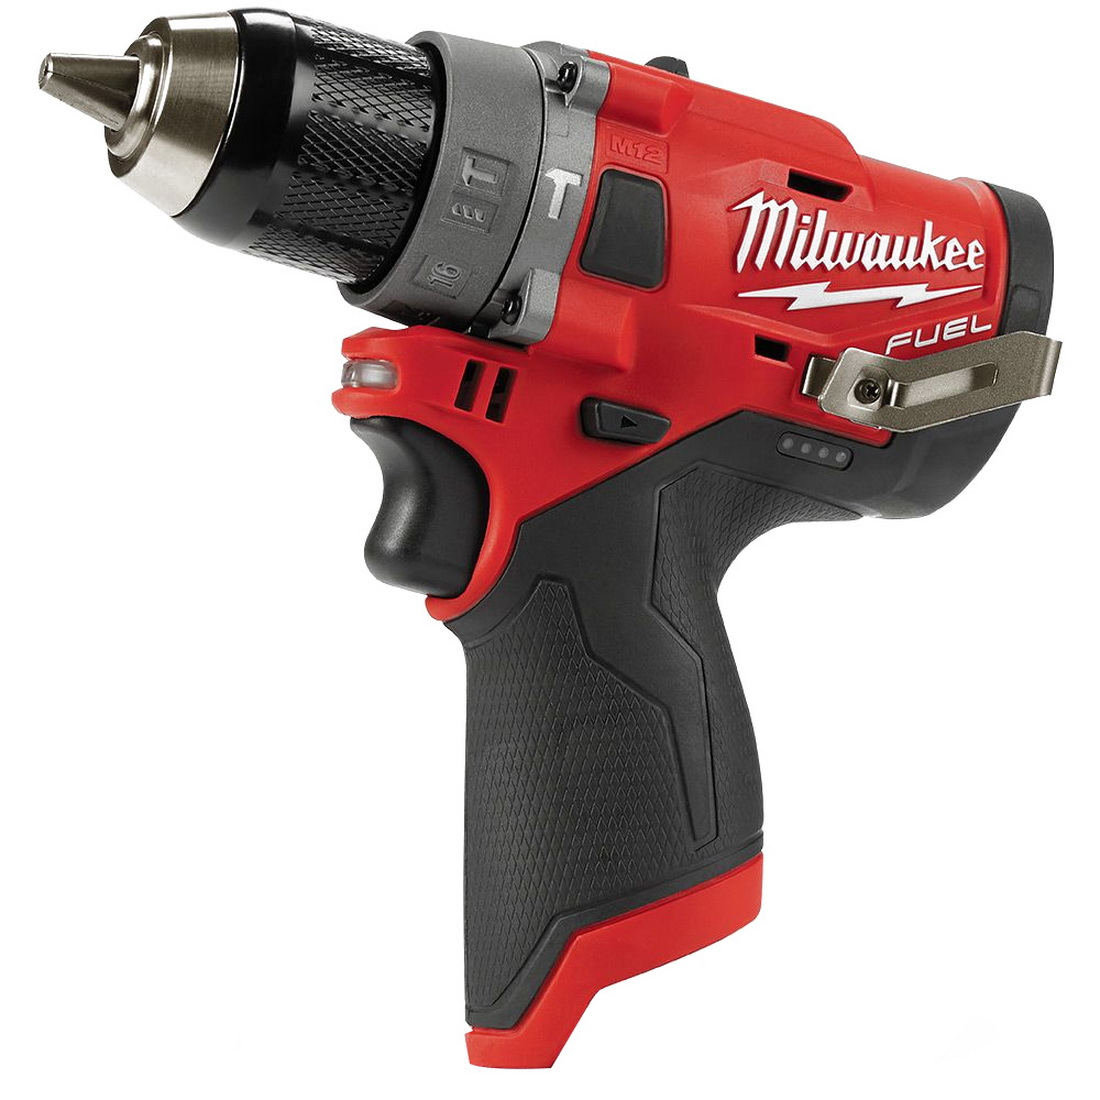 M12 FUEL Cordless Hammer Drill and Driver 13mm (Tool Only)